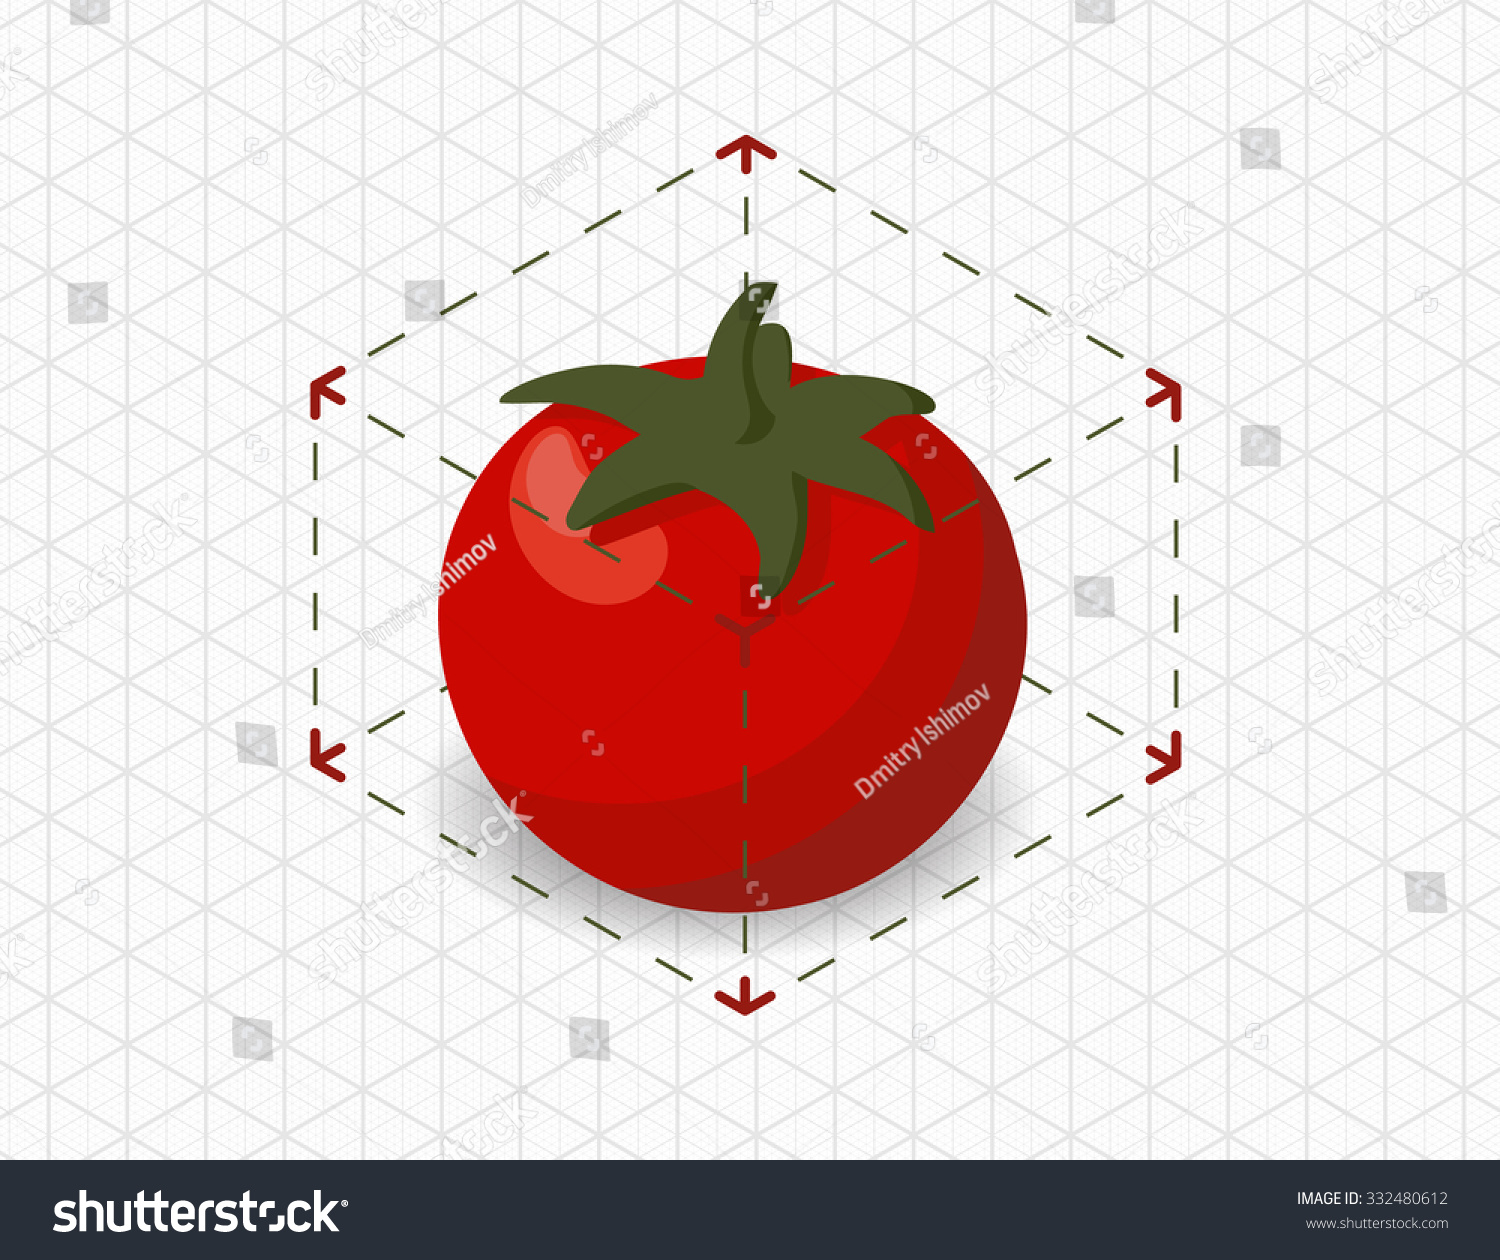 Isometric Tomato Bounding Box Stock Vector Royalty Free 332480612 Plant Diagram In